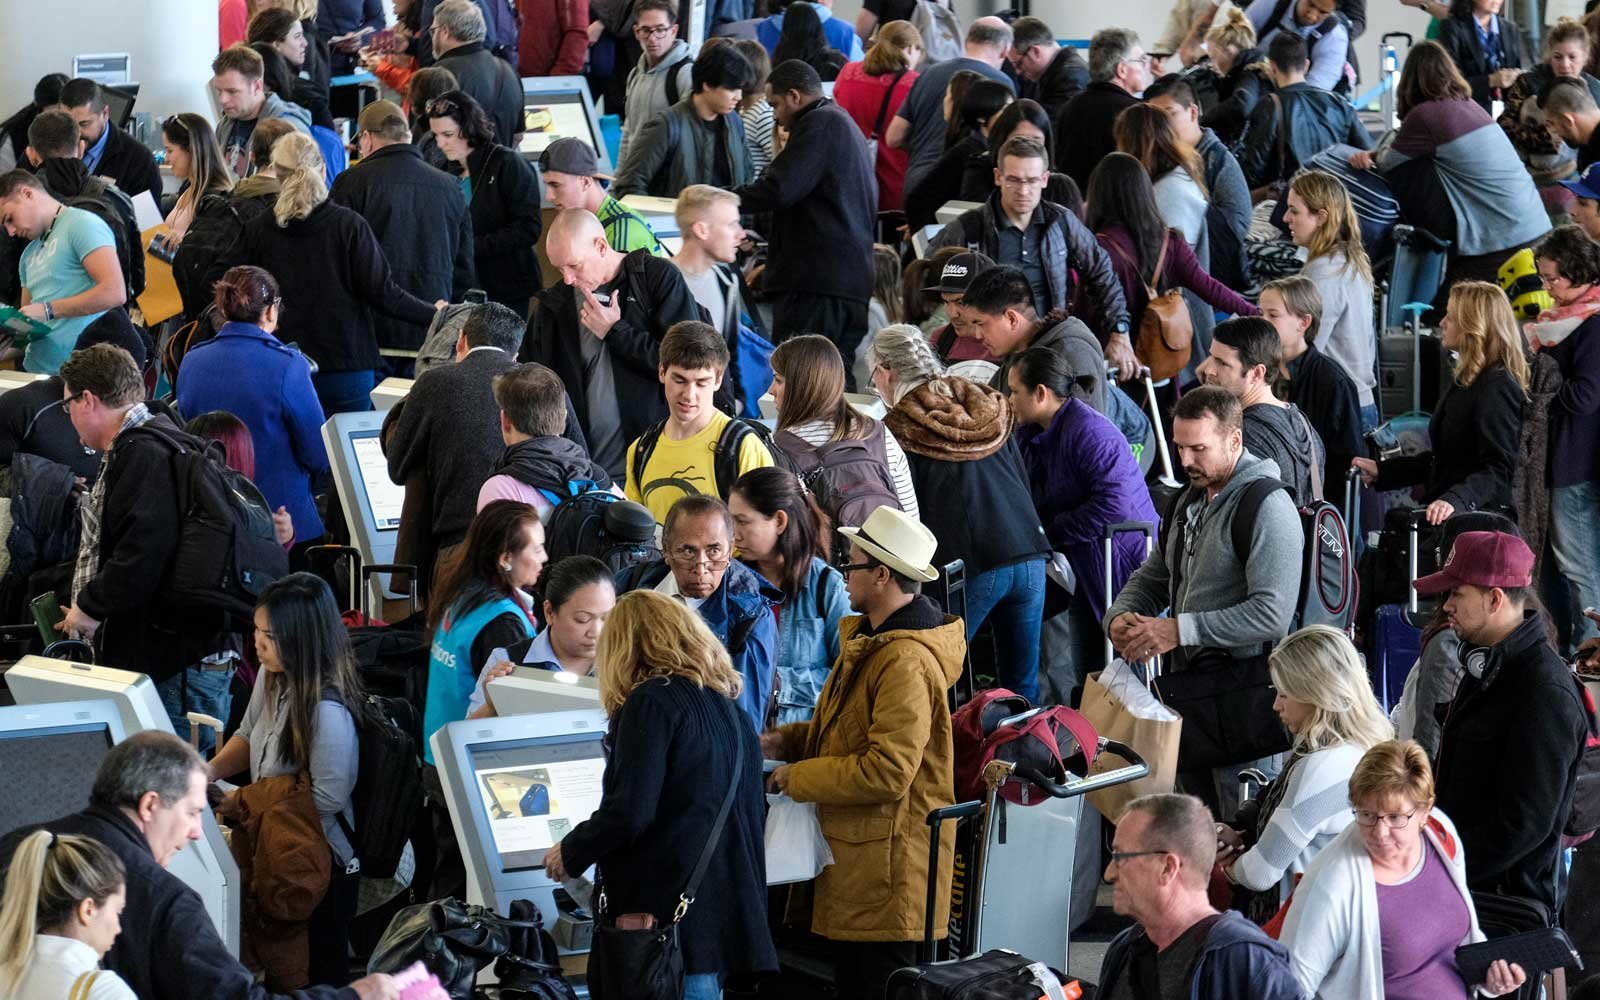 The TSA Is Preparing for Its Busiest Summer Ever With 10 Million More Passengers Than Last Year